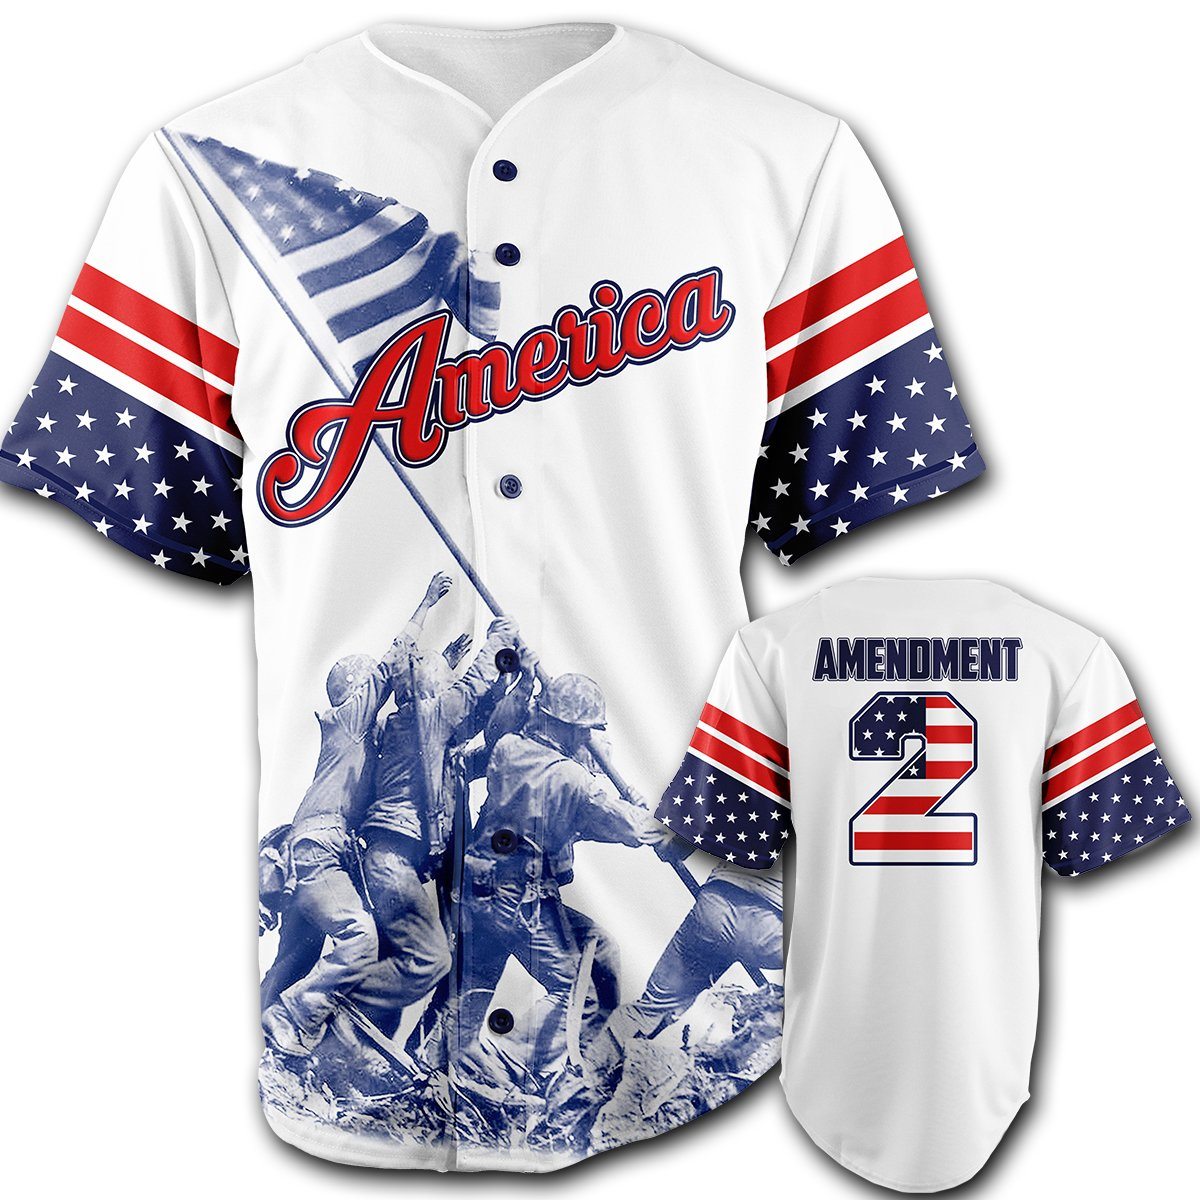 Team America 2nd Amendment Jersey - Greater Half